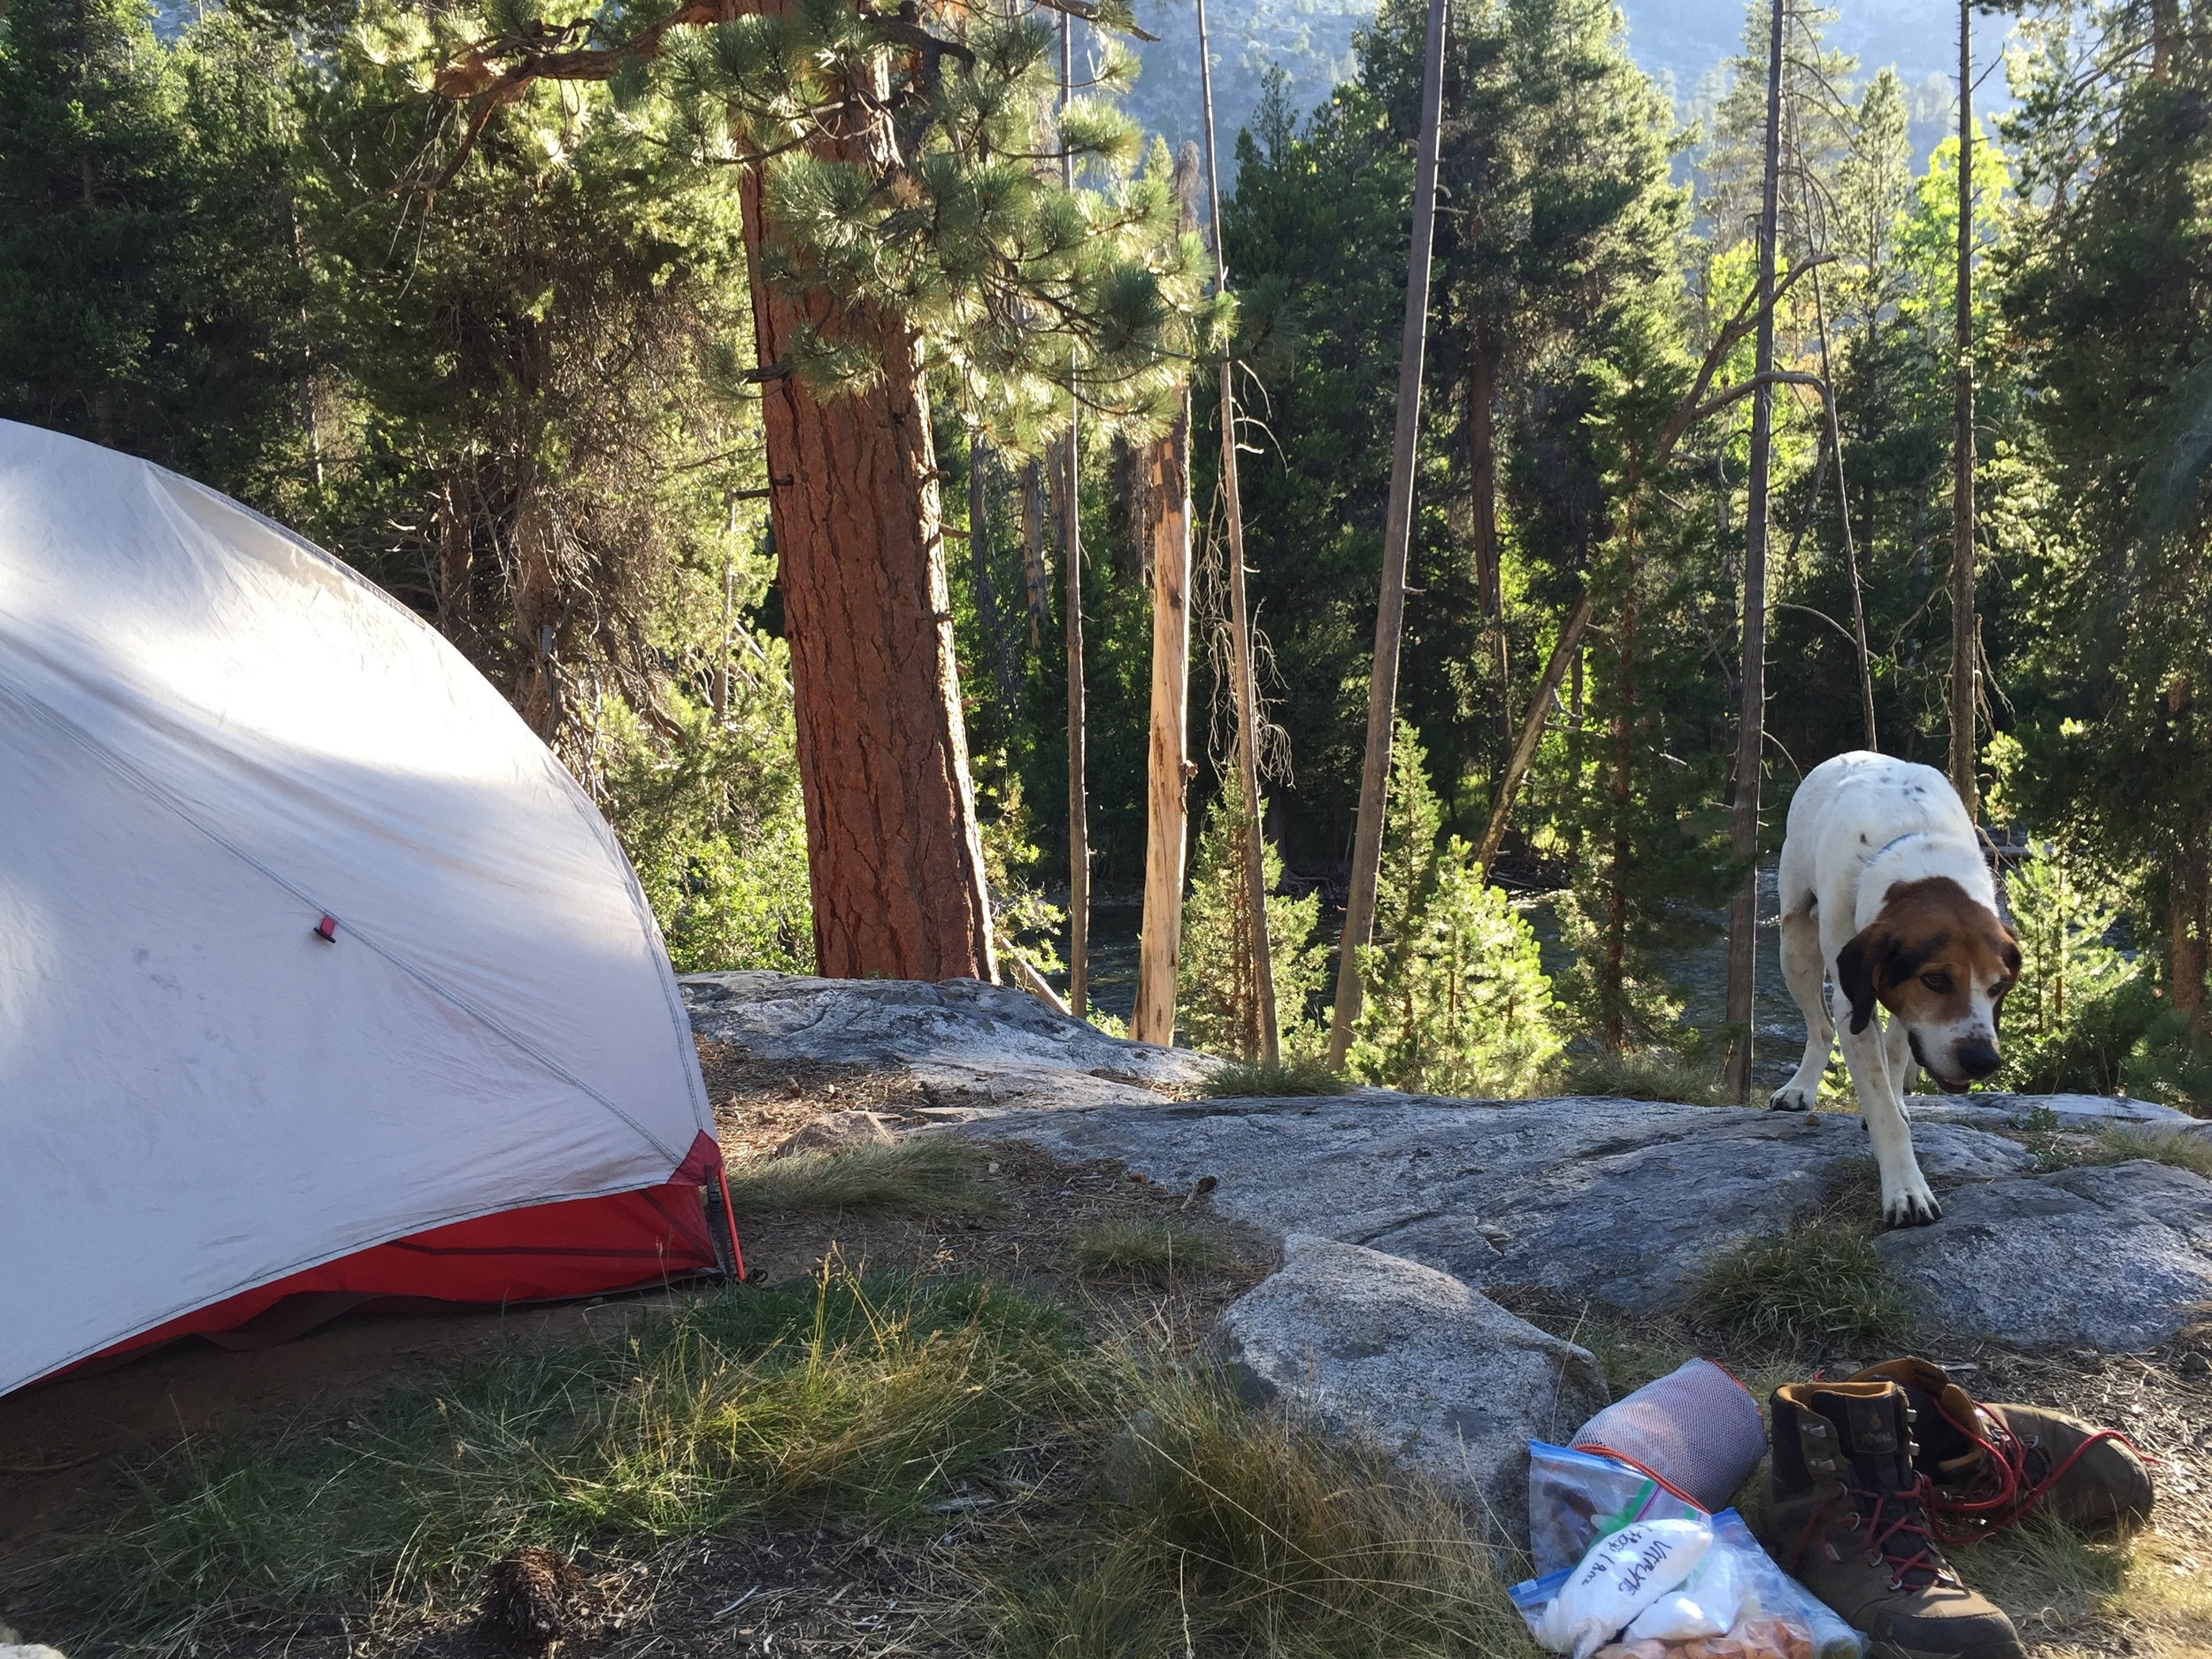 Day 8: camped near Muir Trail Ranch, just above the San Joaquin River. we were visited by one of the resident dogs of MTR. We found the dogs to be much friendlier than the staff.